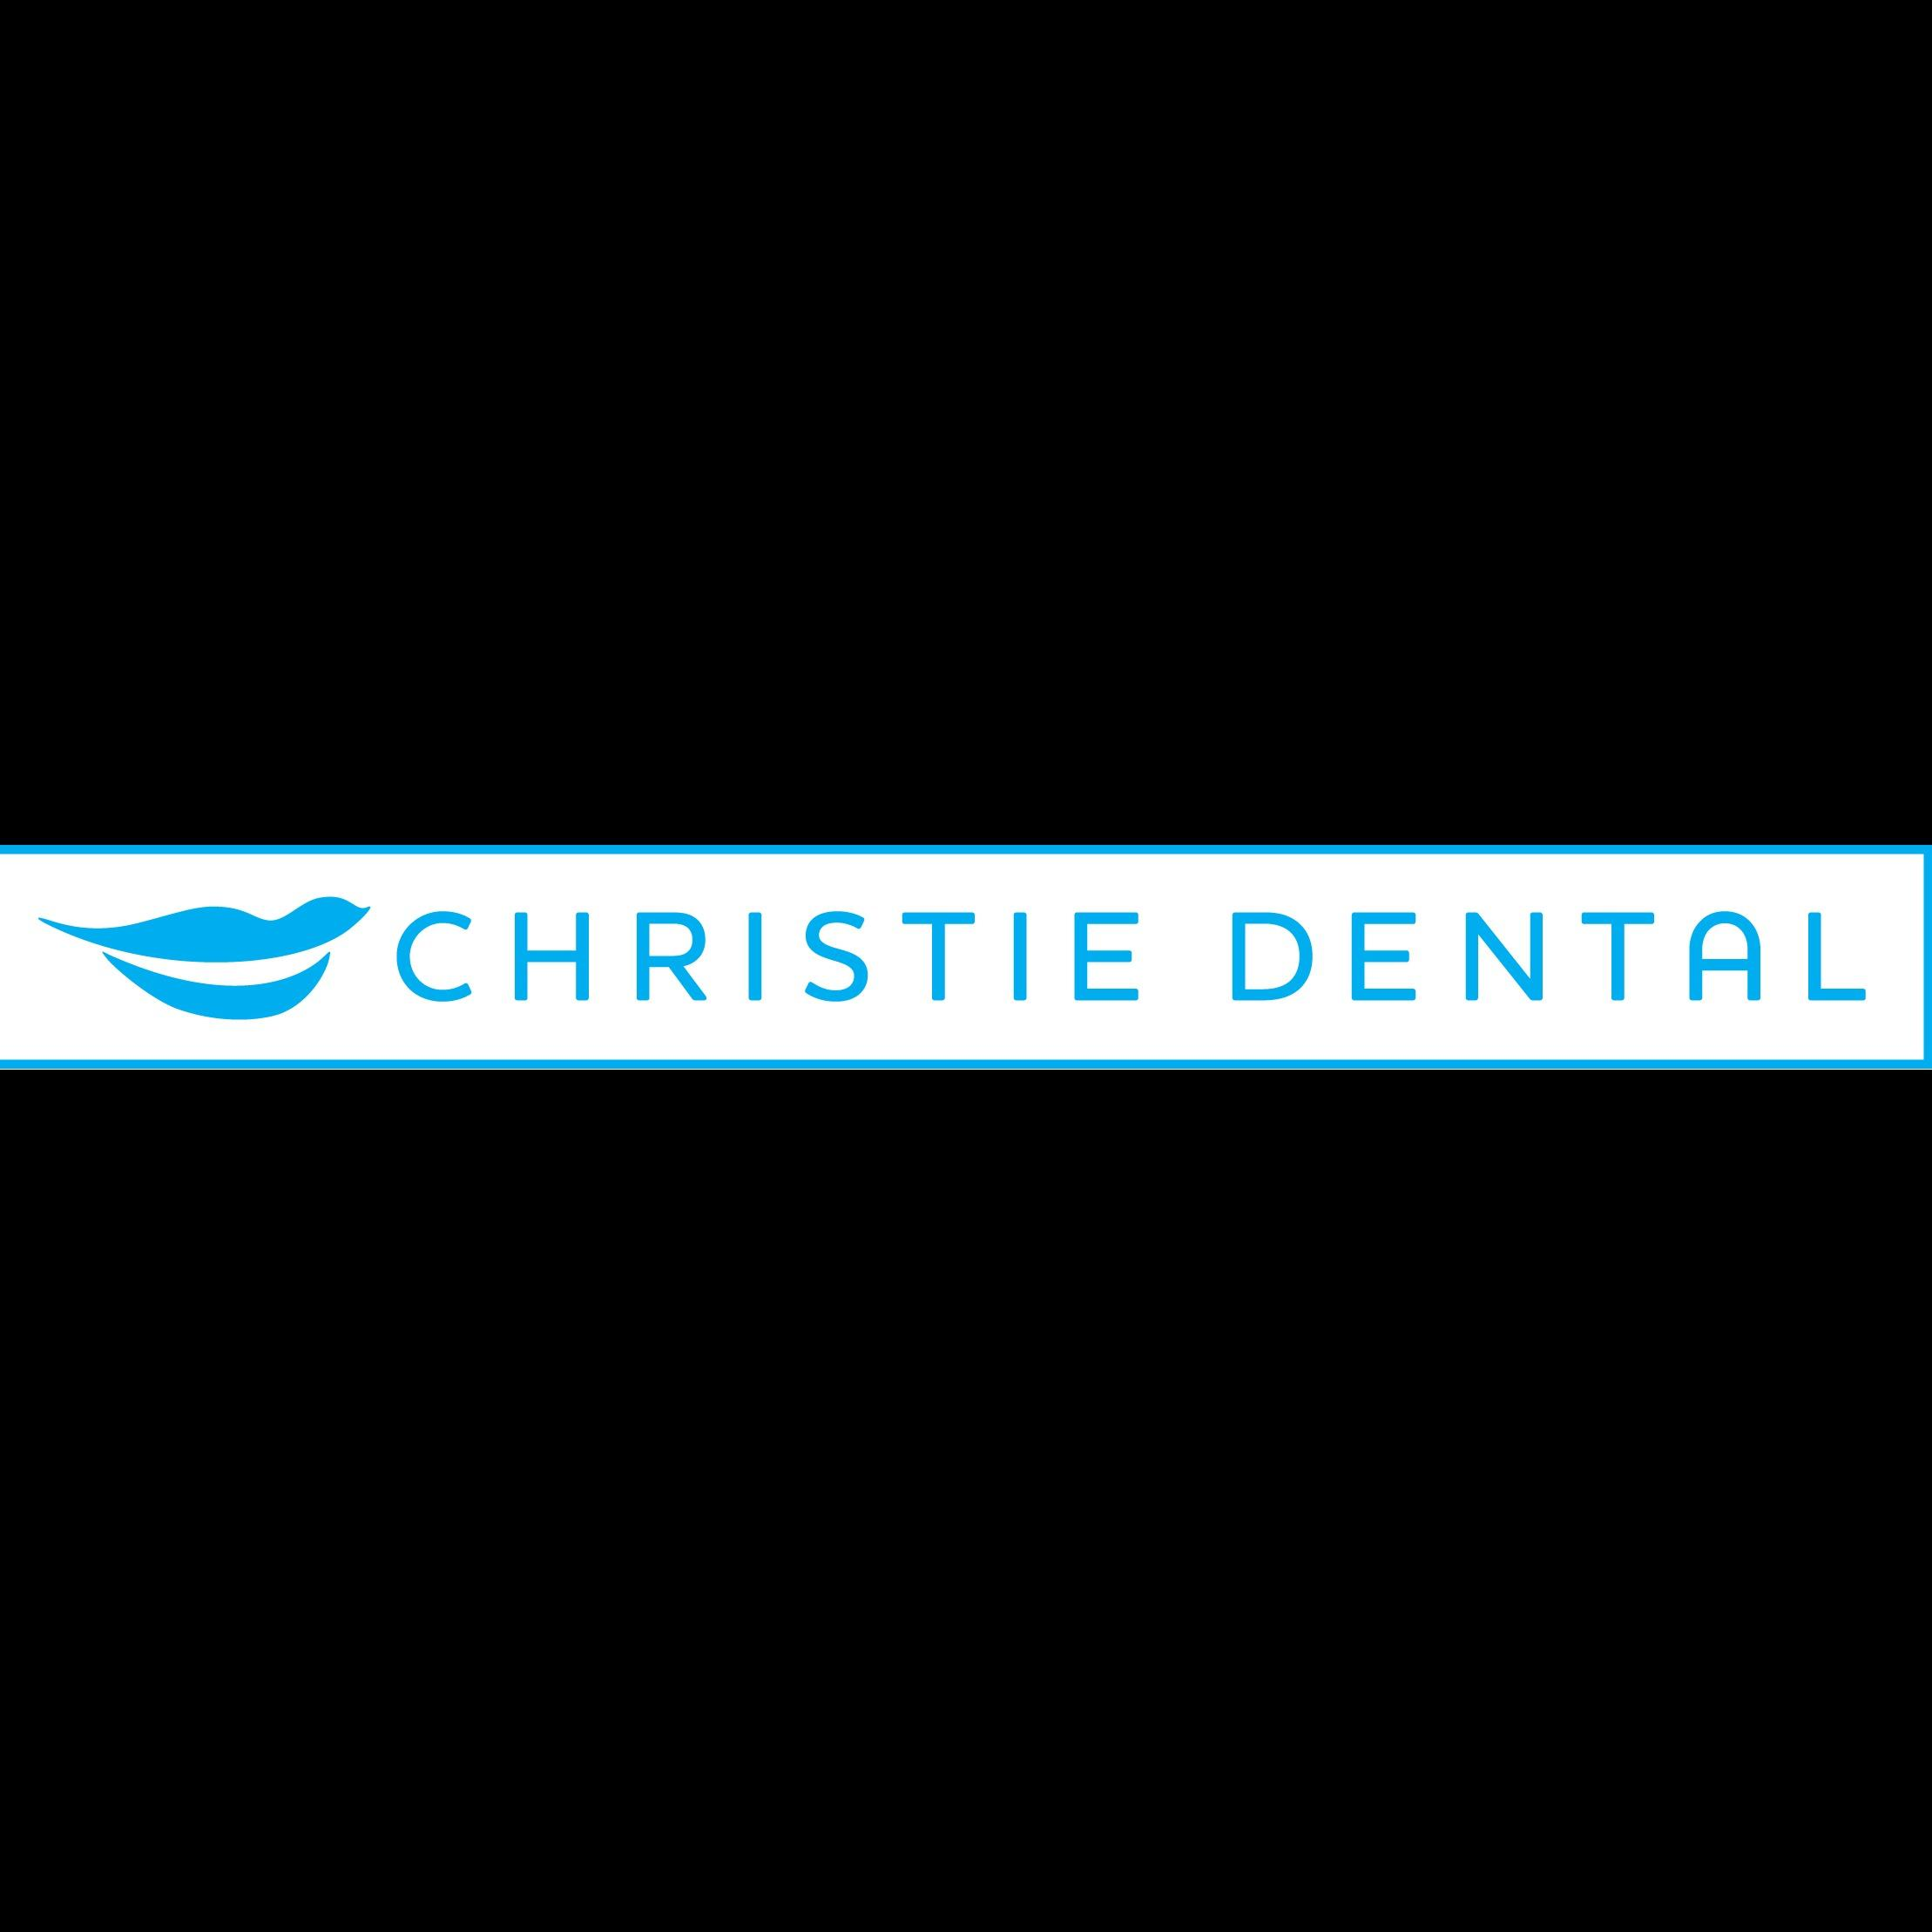 Christie Dental Specialty Office Palm Bay